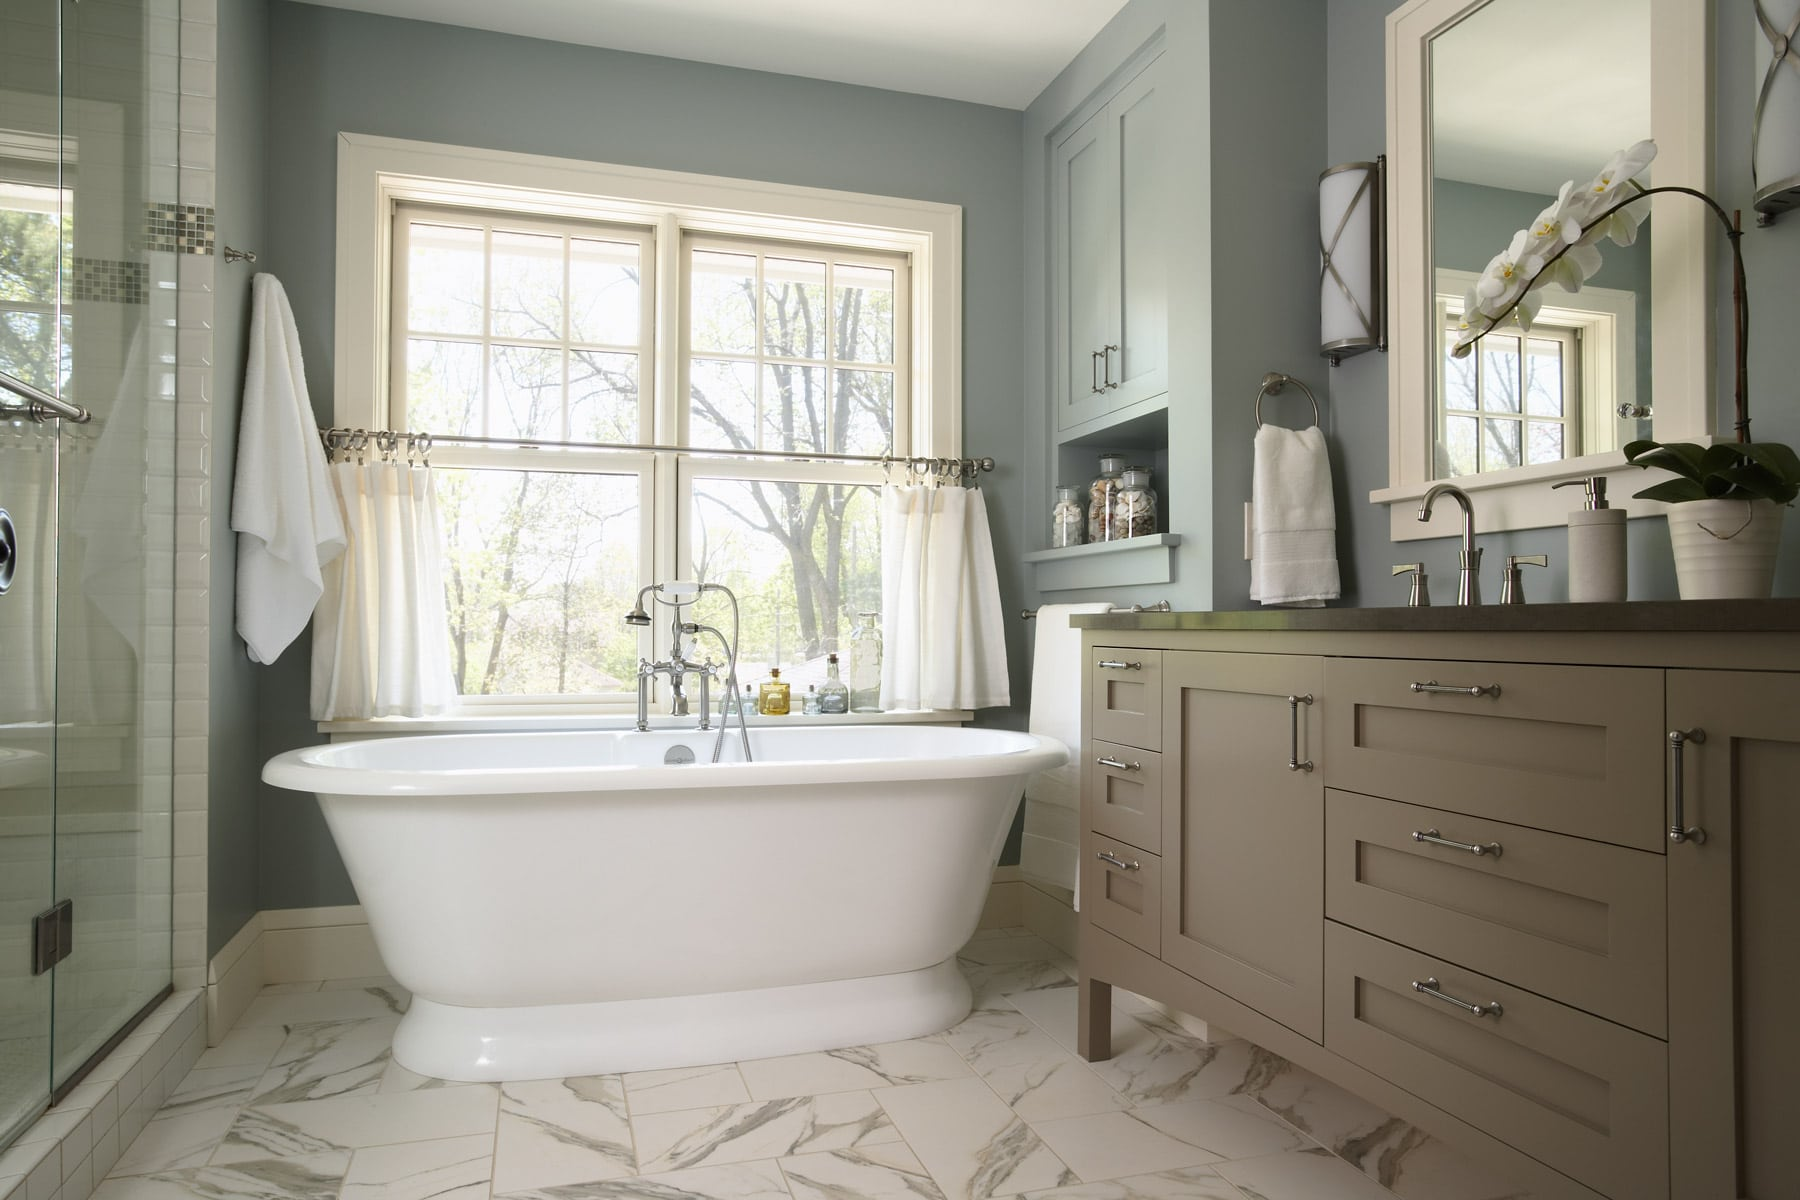 Beautiful-Master-Bath-Freestanding-classic-Tub-Minneapolis-interior-designer.jpeg